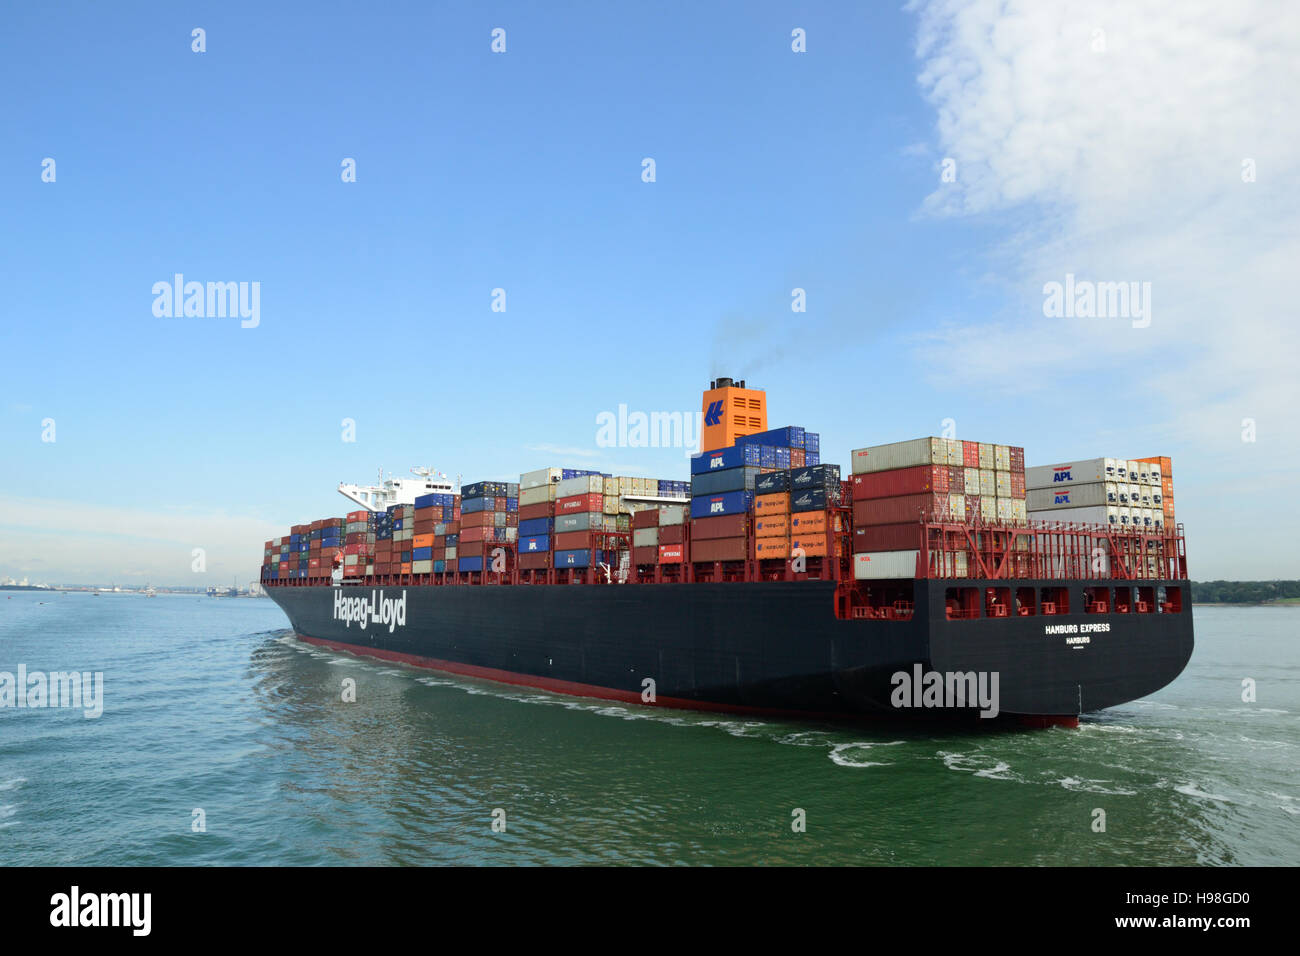 The Hamburg Express, container ship built in 2012 sailing up Southampton Water to the the port of Southampton. Stock Photo